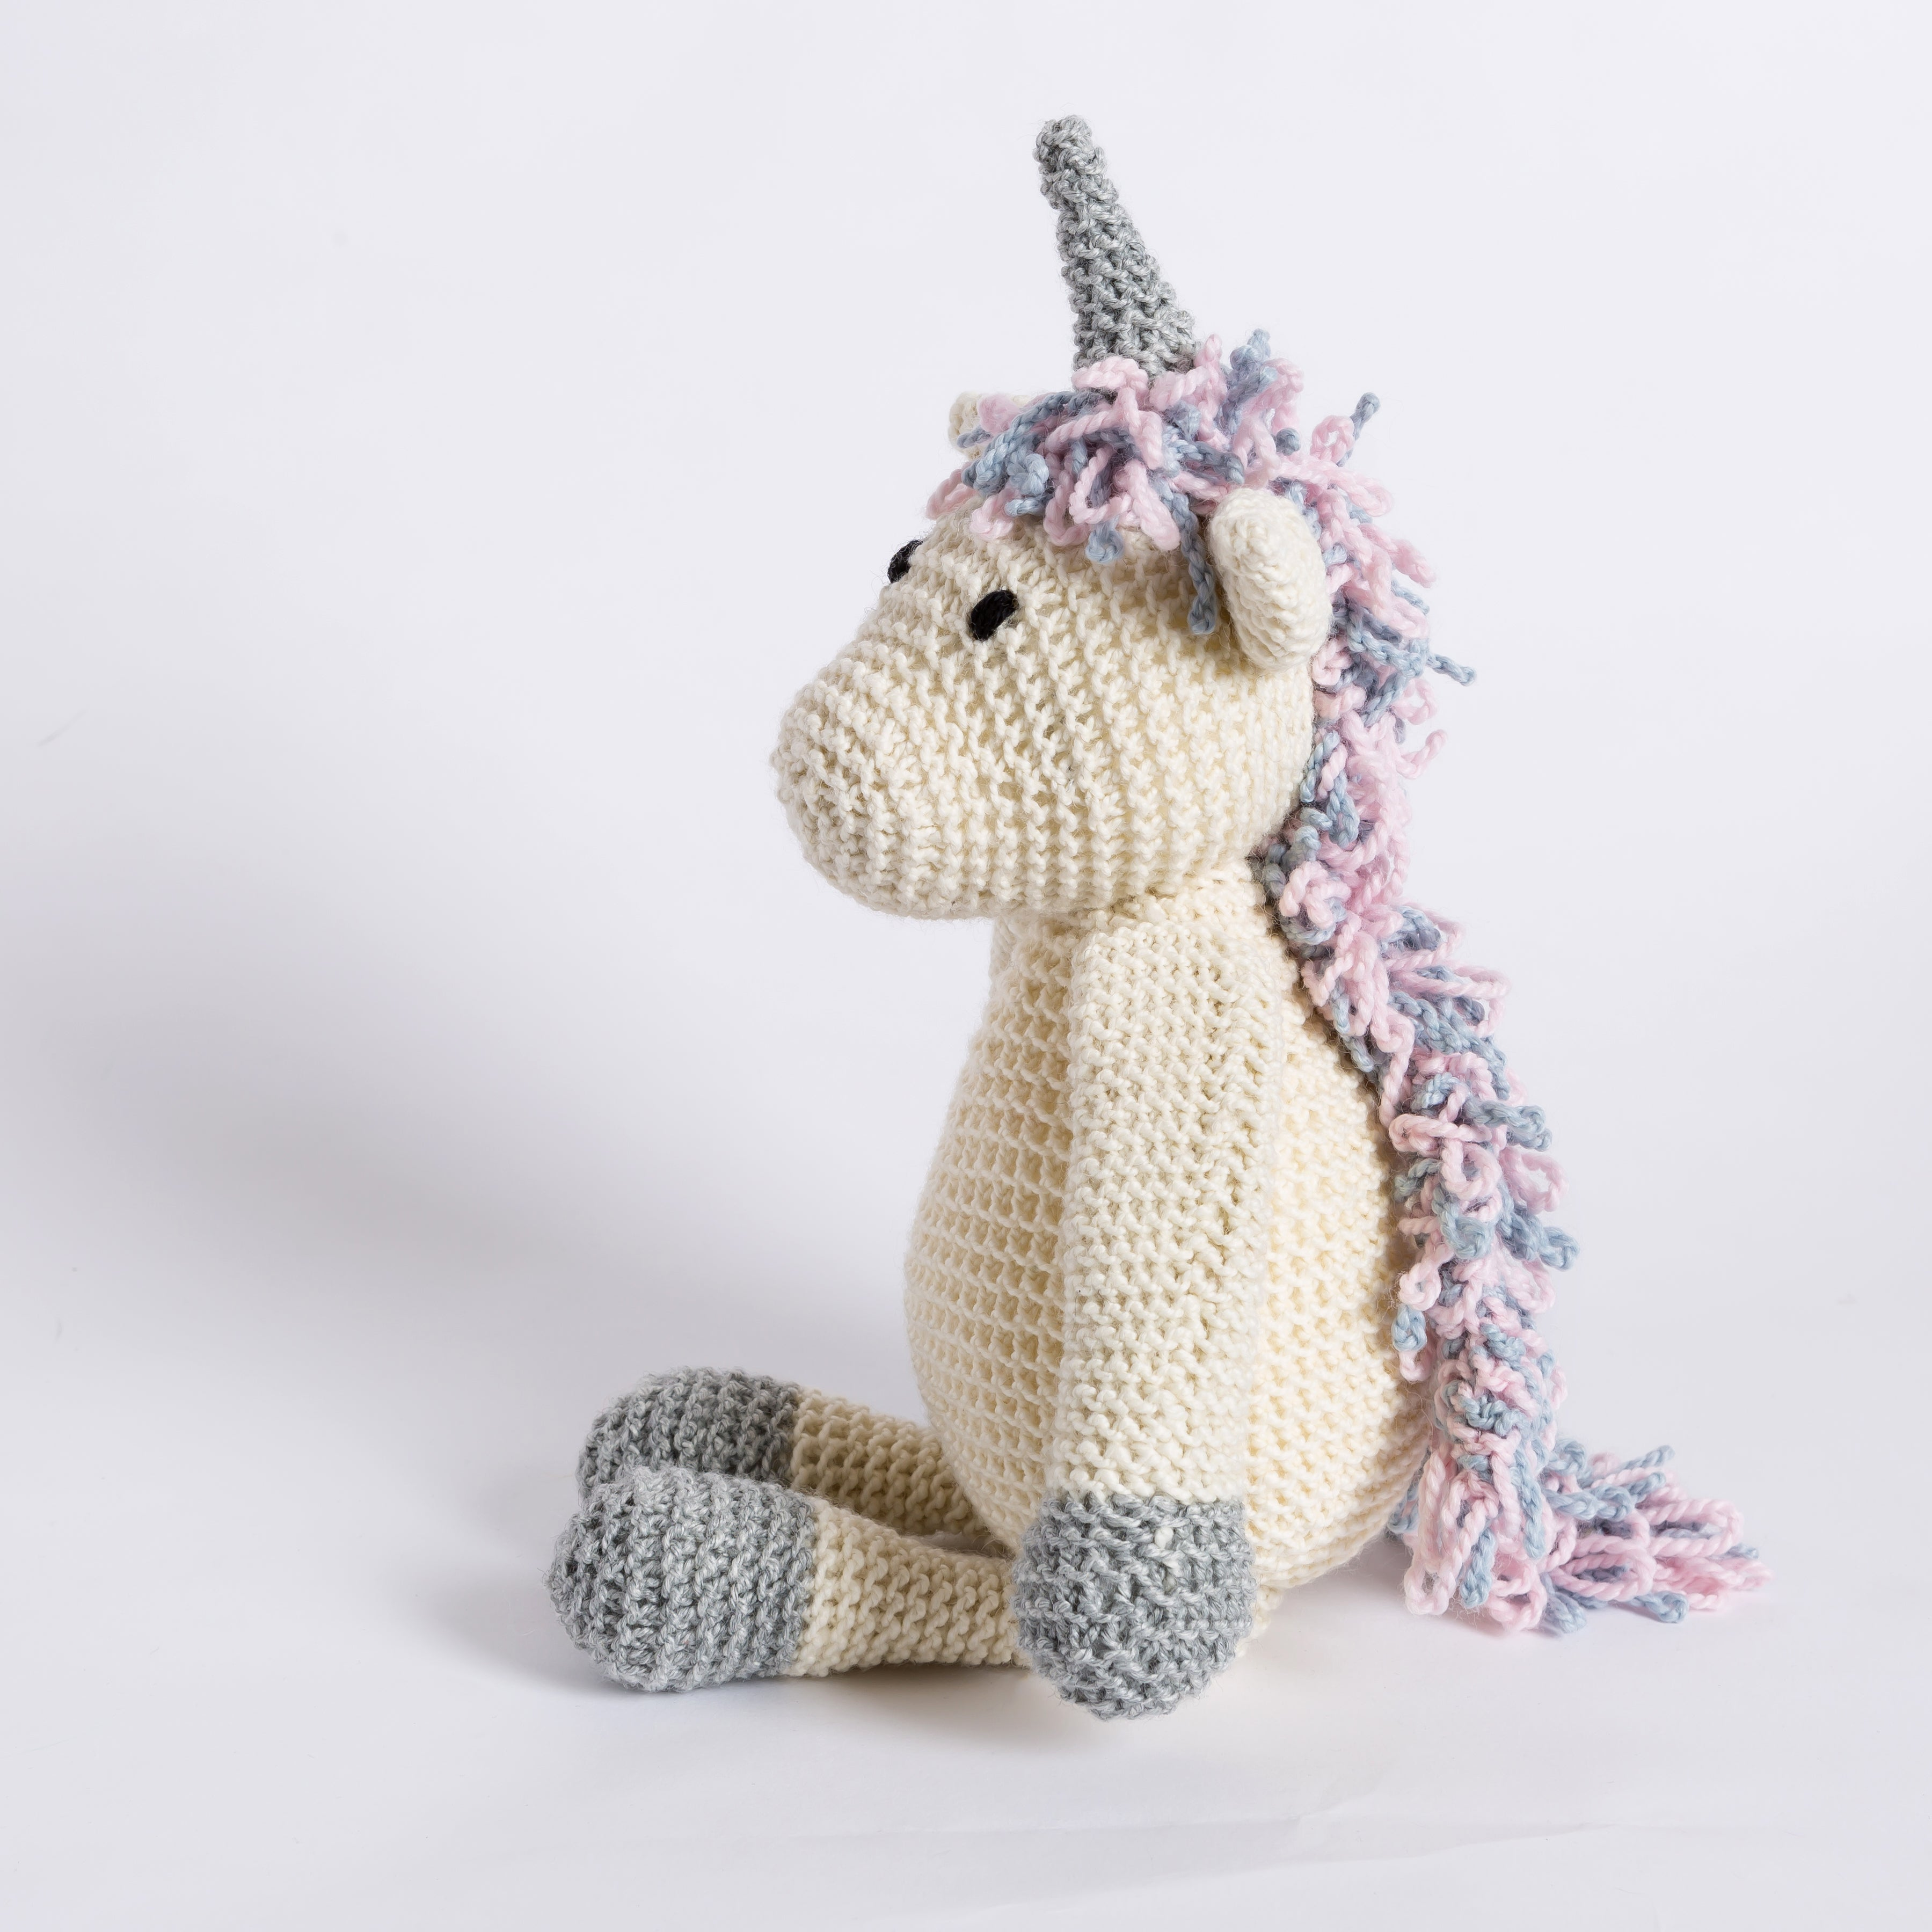 Wool Couture | Lucy The Unicorn Knitting Kit | 2021 AAA Spring Show Kit